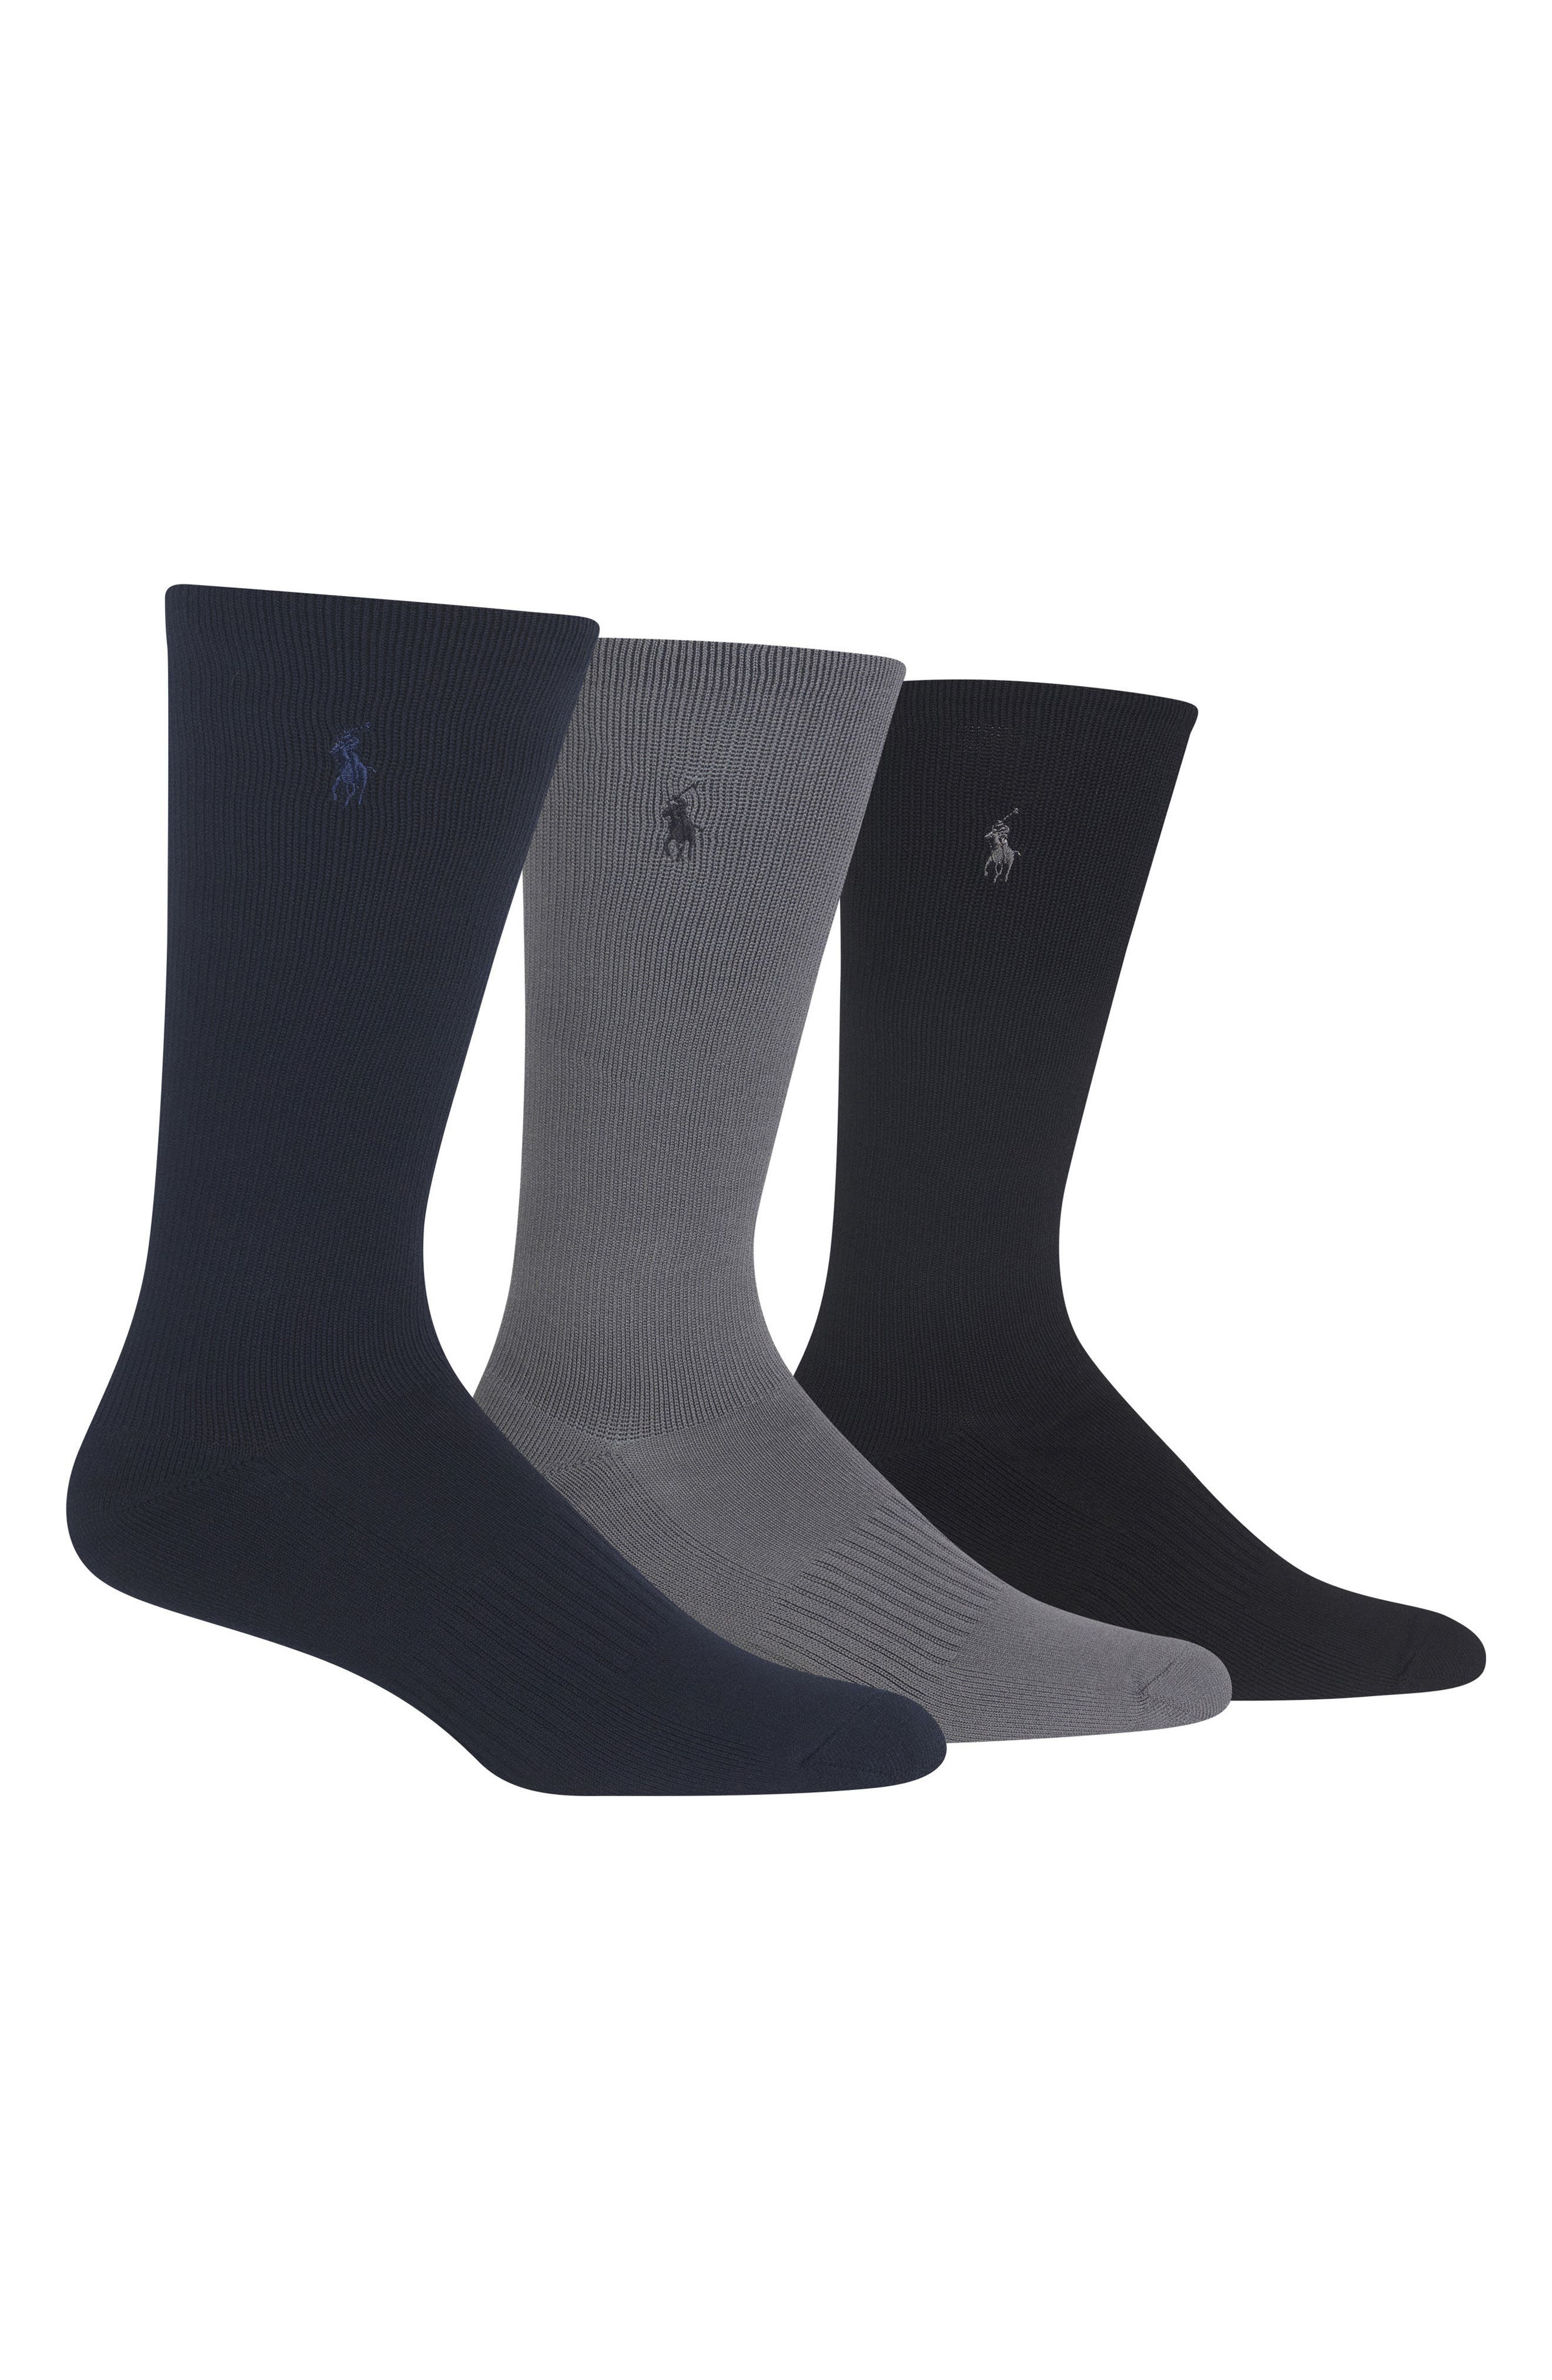 Main Image - Polo Ralph Lauren 3-Pack Compression Socks